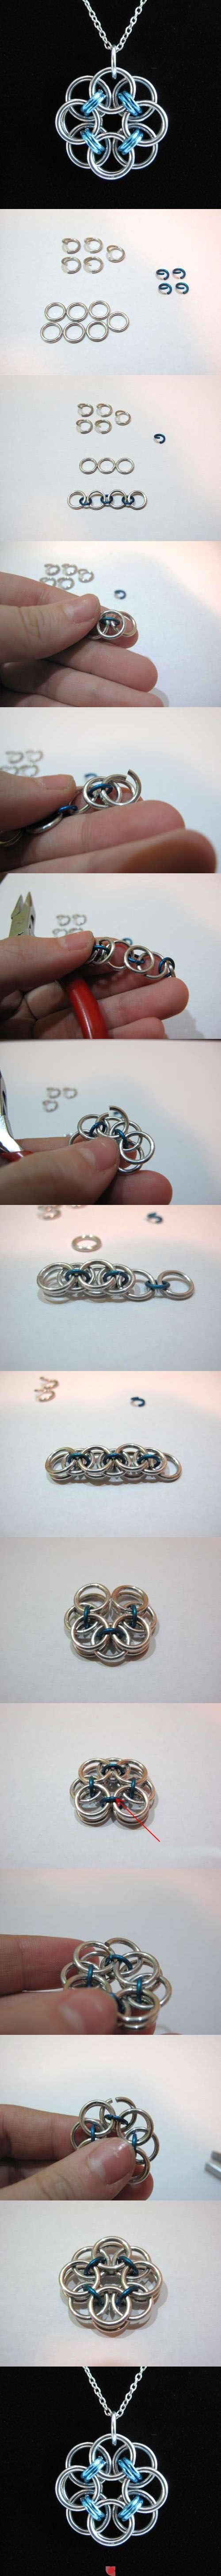 chain maille: